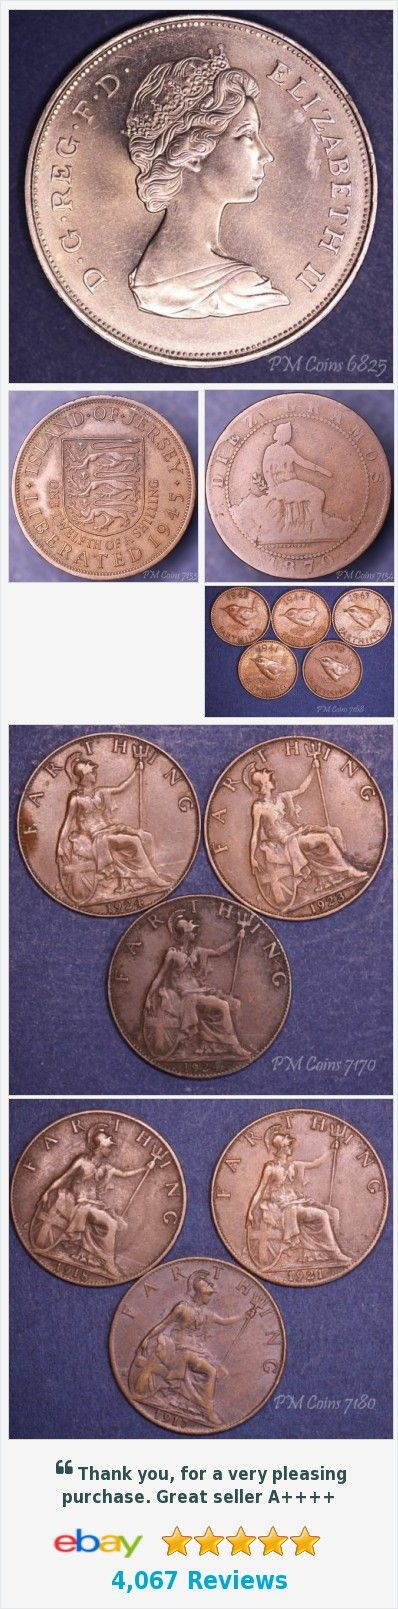 Items in PM Coin Shop store on eBay ! http://stores.ebay.co.uk/PM-Coin-Shop